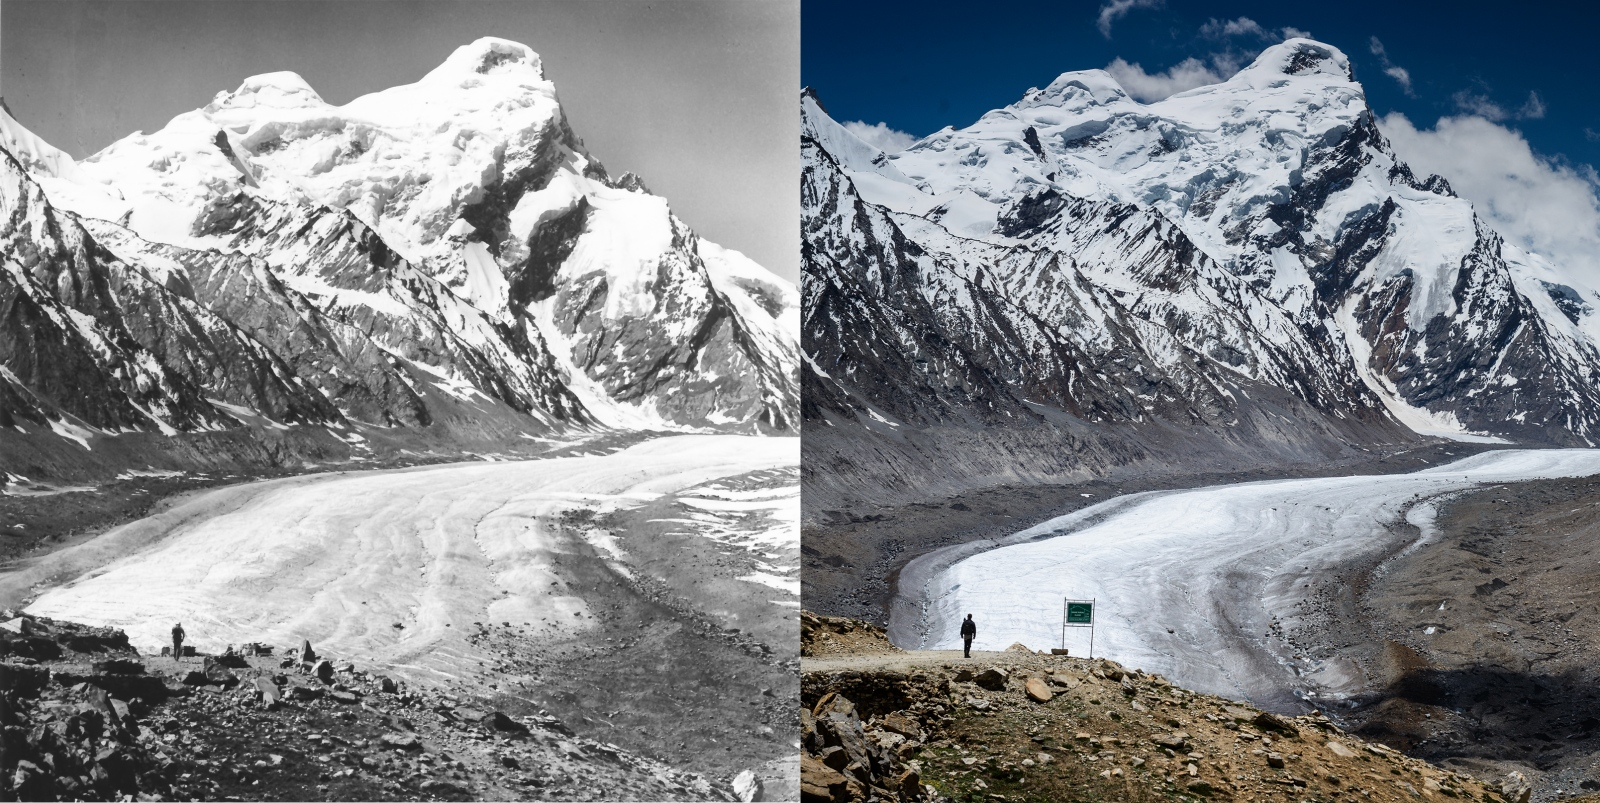 Left: Drang-Drung glacier seen from the Penzi-La Pass of the Zanskar region, during the summer of 1980. Historical photo taken by German alpinist Dieter Kirch. Right:Drang-Drung glacier seen from the Penzi-La Pass of the Zanskar region,  during the summer of 2013. Photo taken by myself, Christopher Rubey using the repeat photography method to help measure ice volume loss over time.